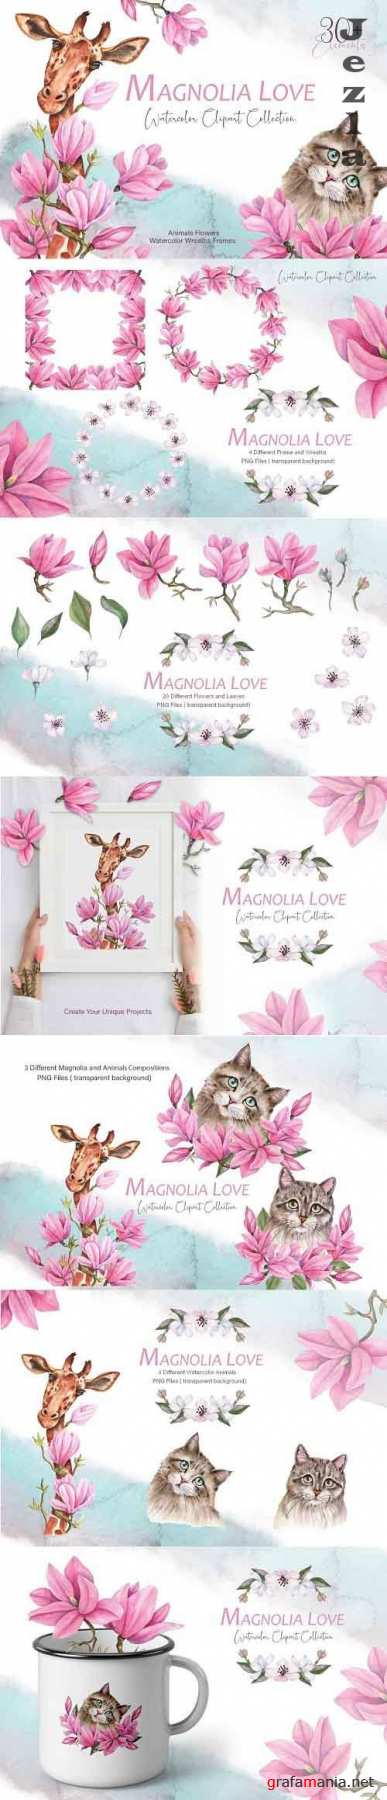 Magnolia Love Watercolor Collection -  5892025